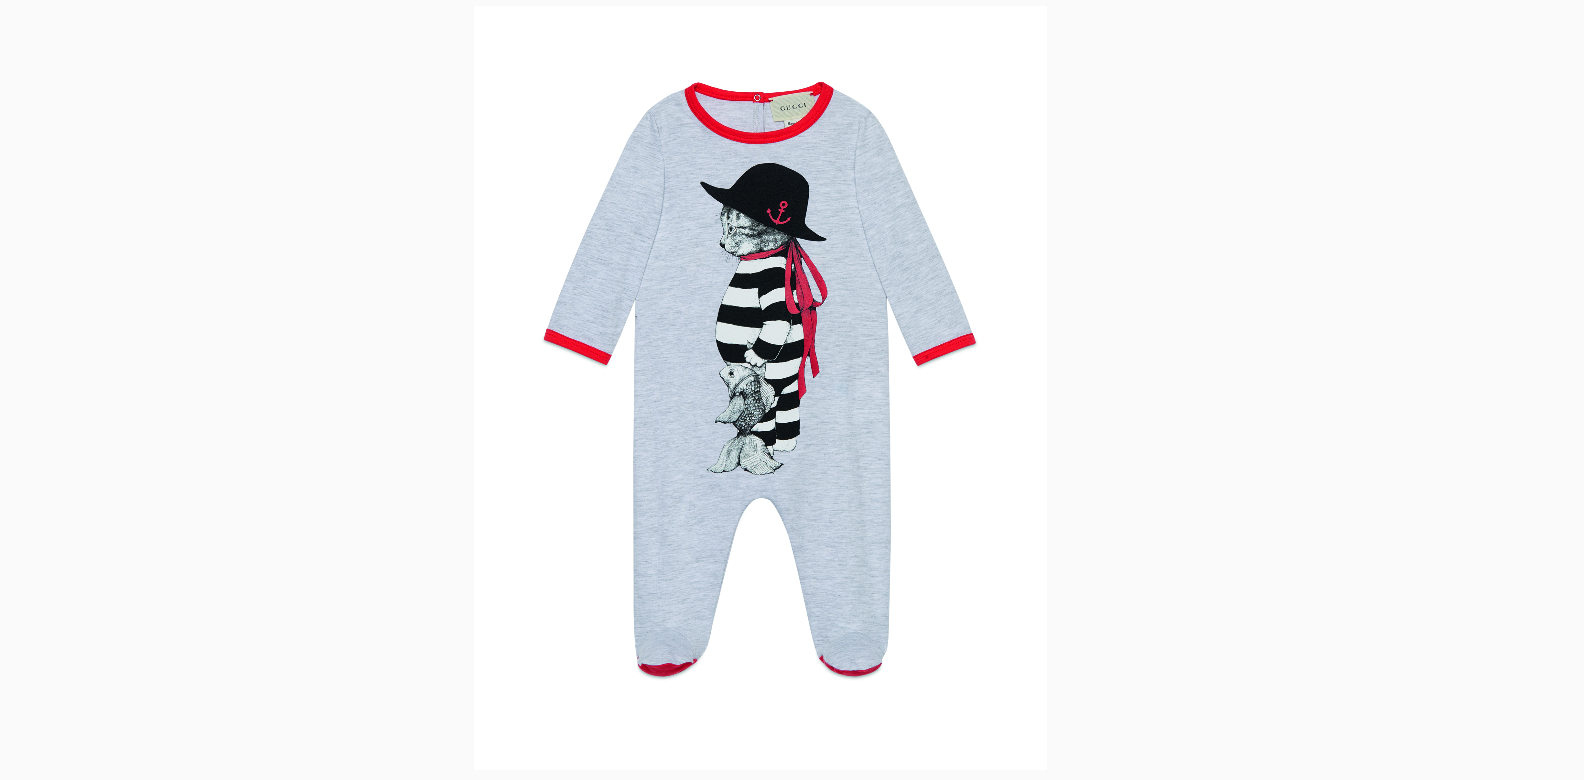 """Gucci x Yuko Higuchi romper; B1-58 The Shoppes at Marina Bay Sands""""We've been fans of Gucci this season, and this onesie is super adorable."""" -Cheryl"""